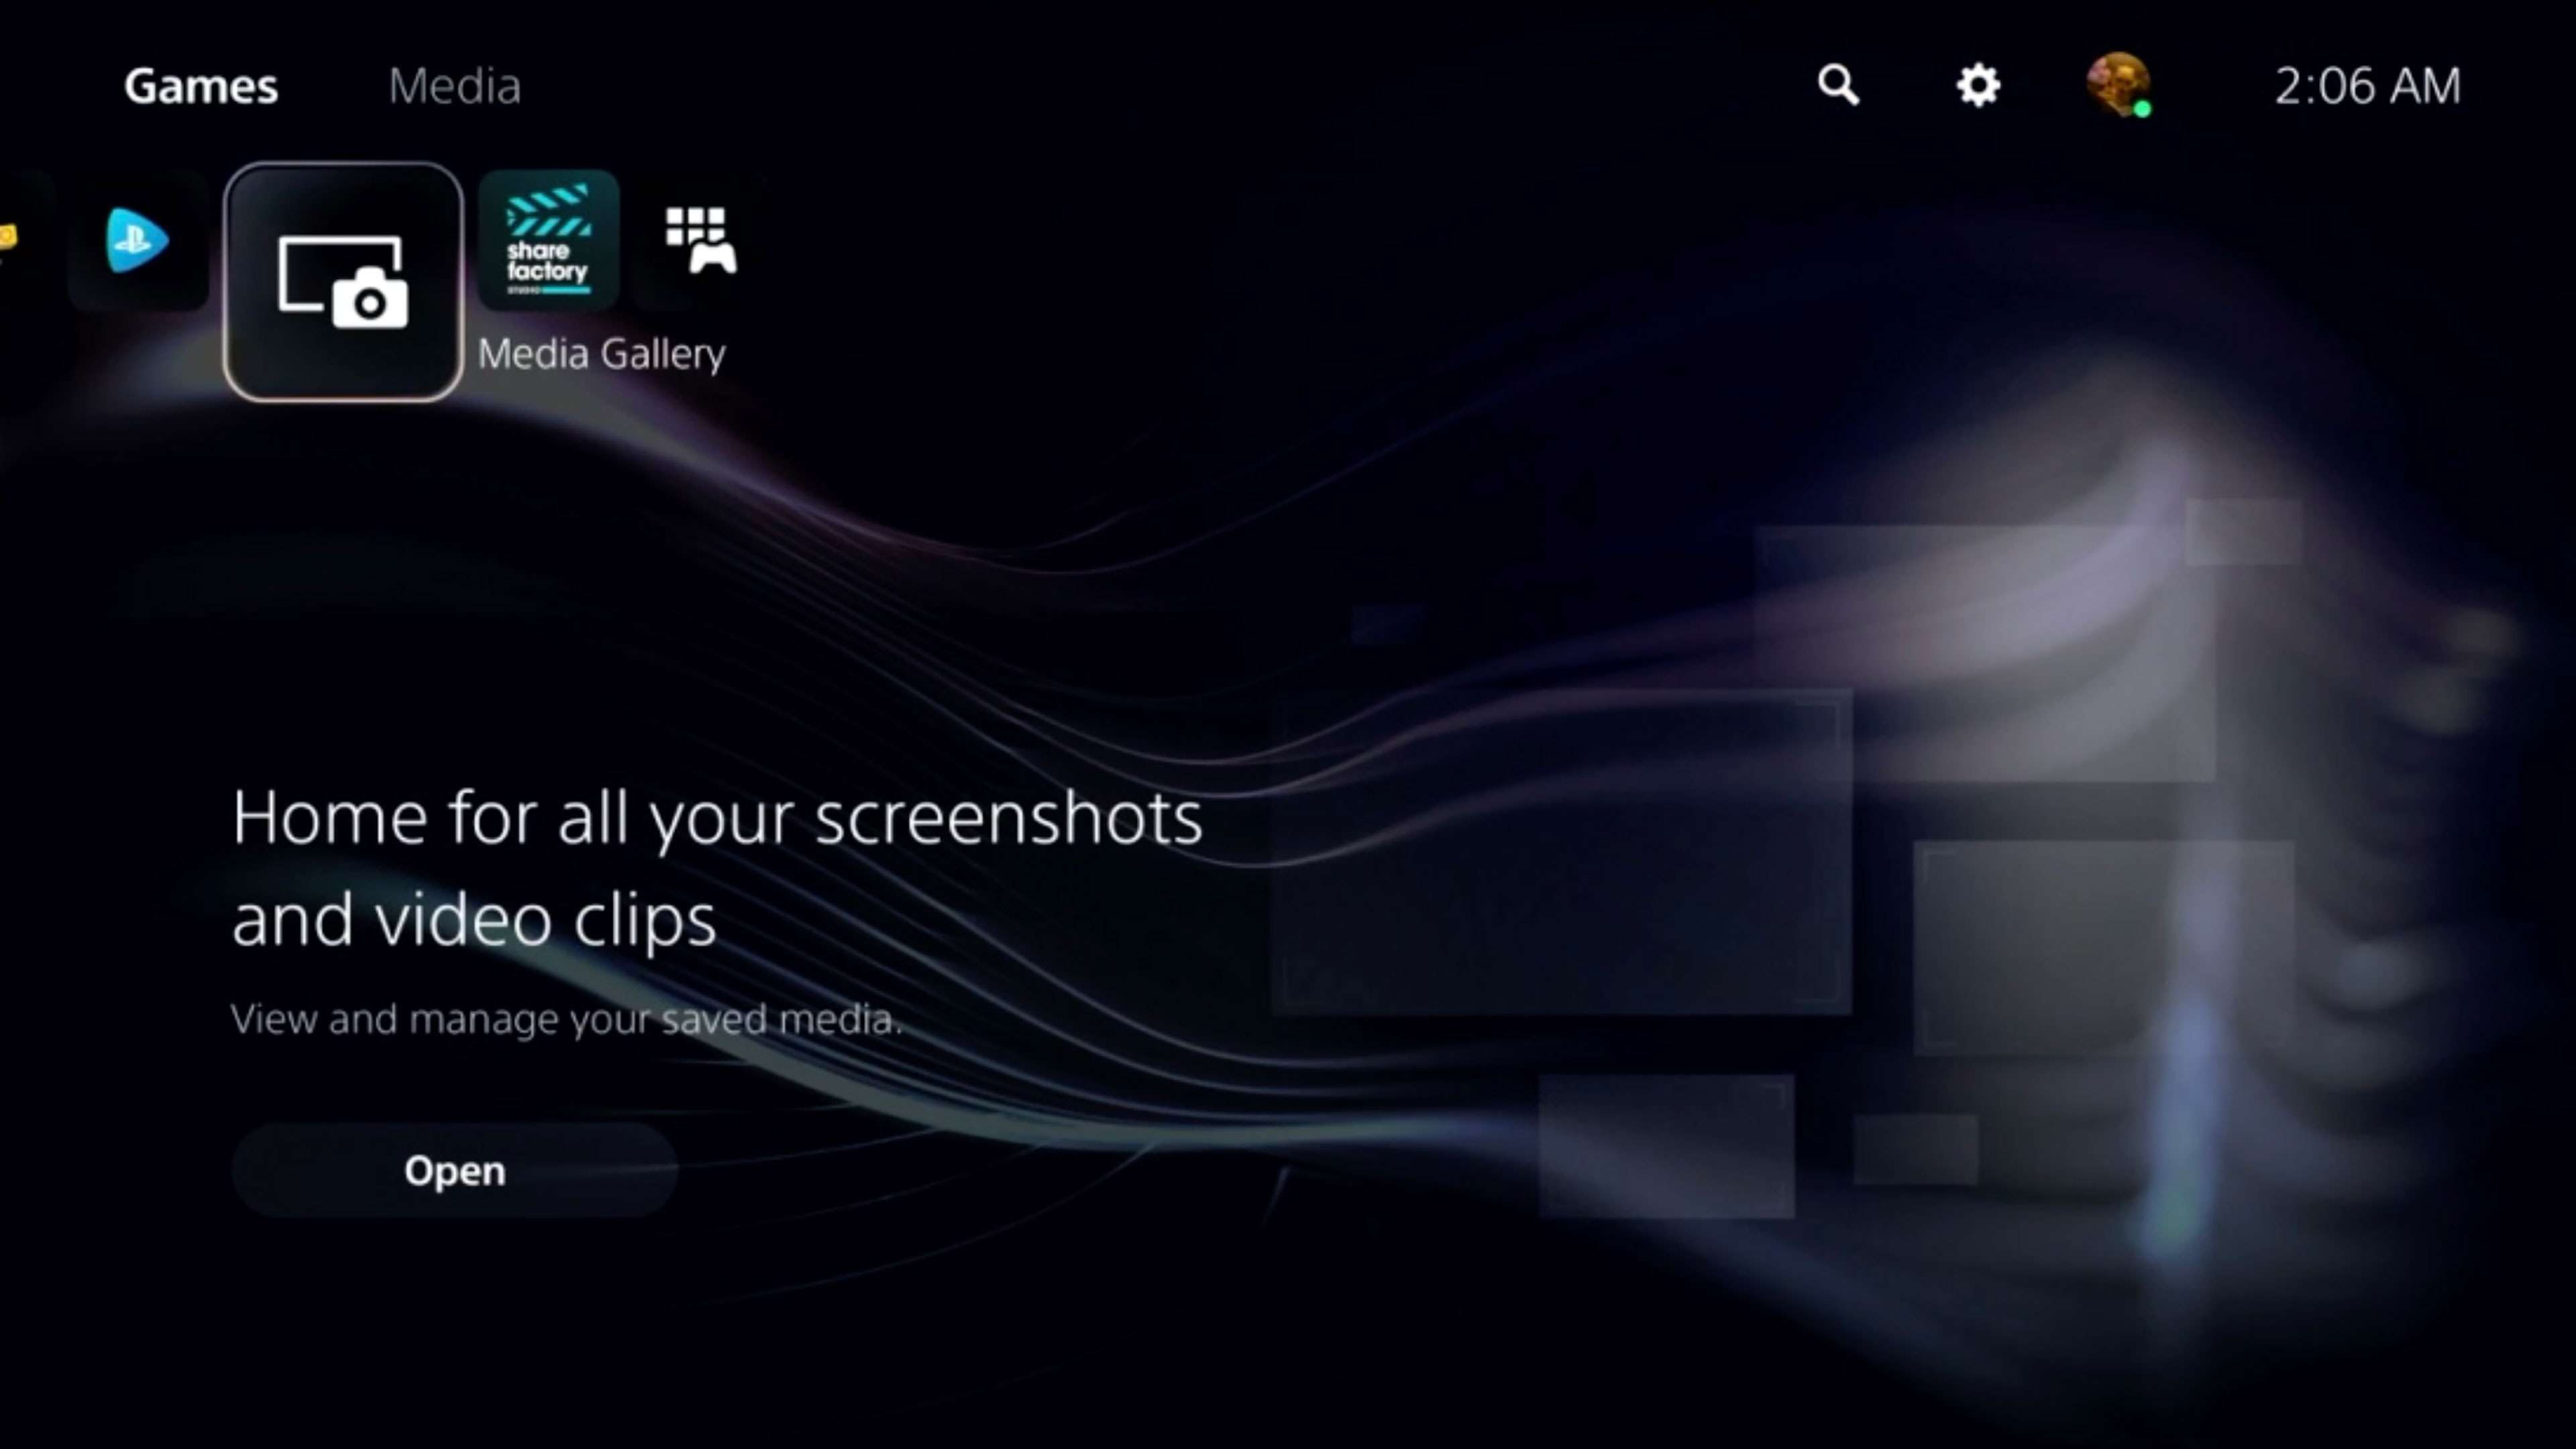 Media Gallery on the PS5 Home screen